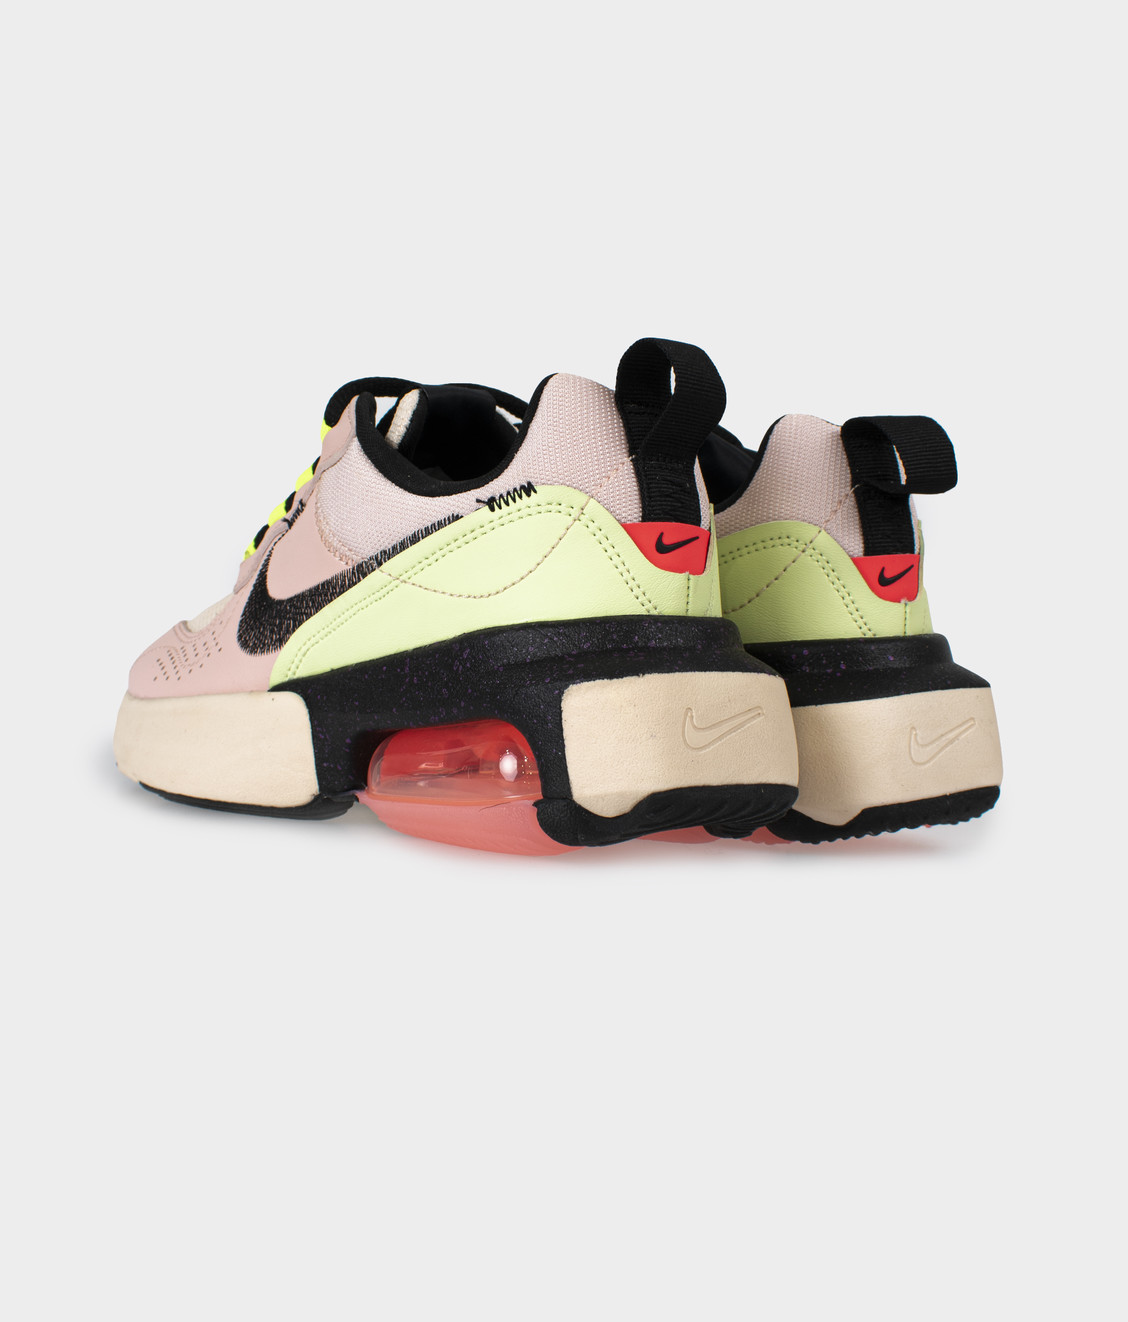 Nike Nike Air Max Verona Guava Ice Black Barely Volt